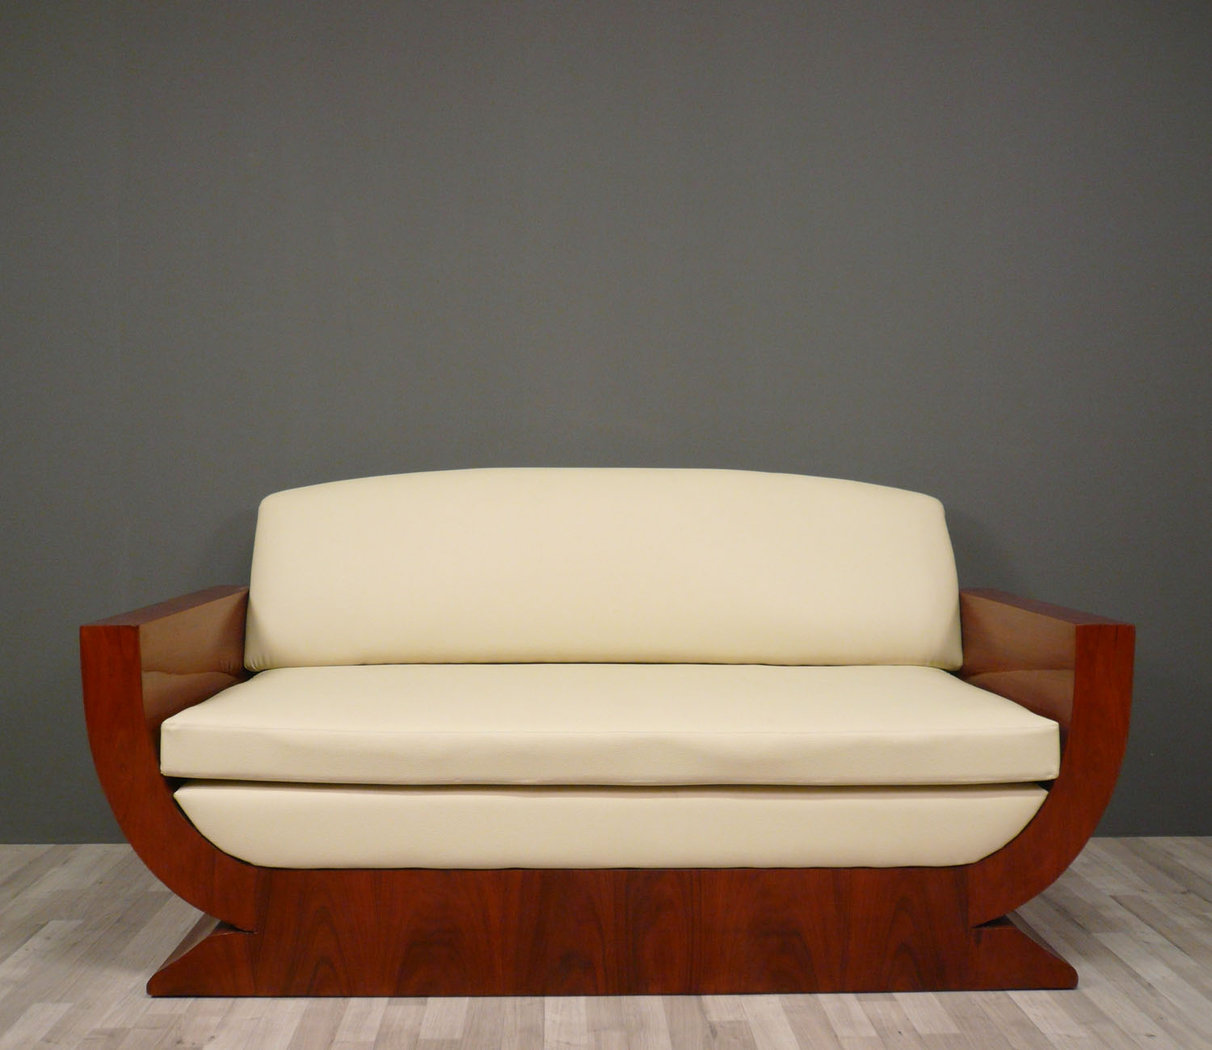 Art deco sofa art deco furniture - Canape art deco cuir ...